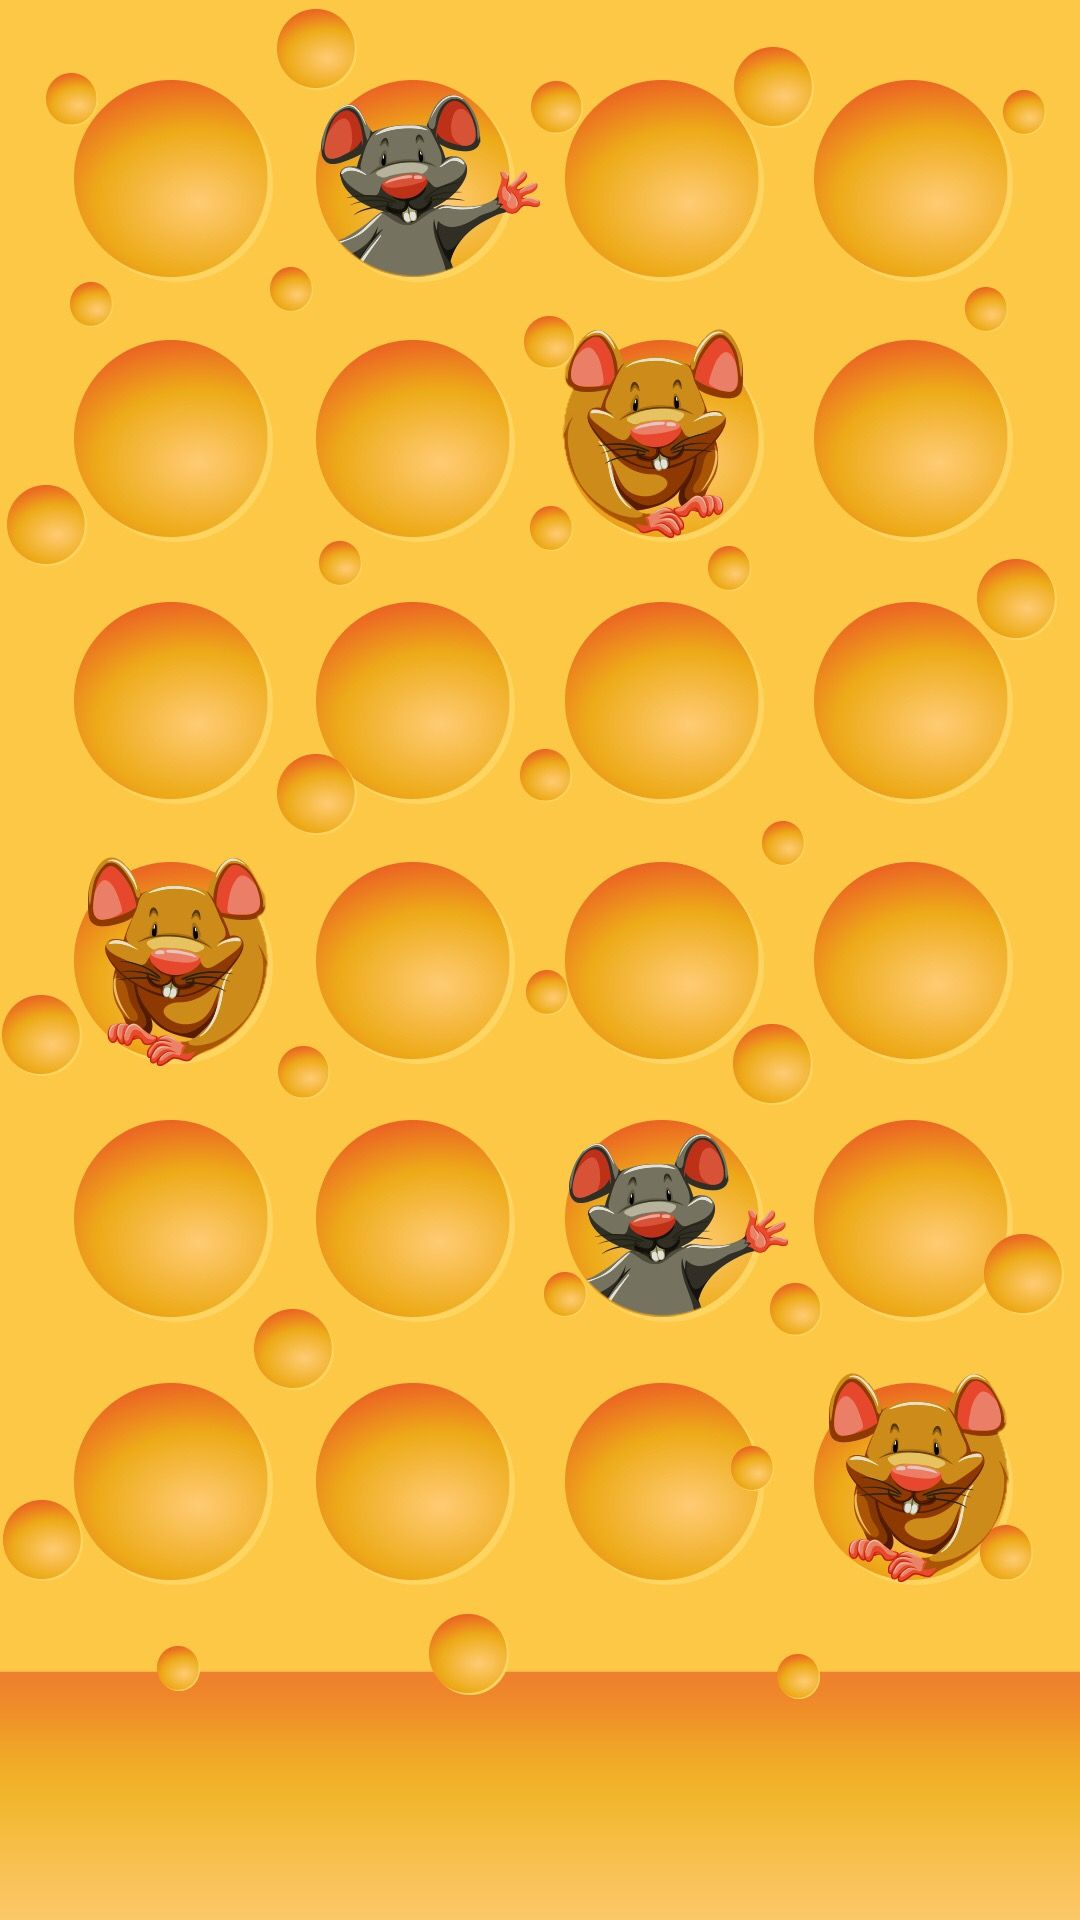 Cheese Iphone 7 - HD Wallpaper